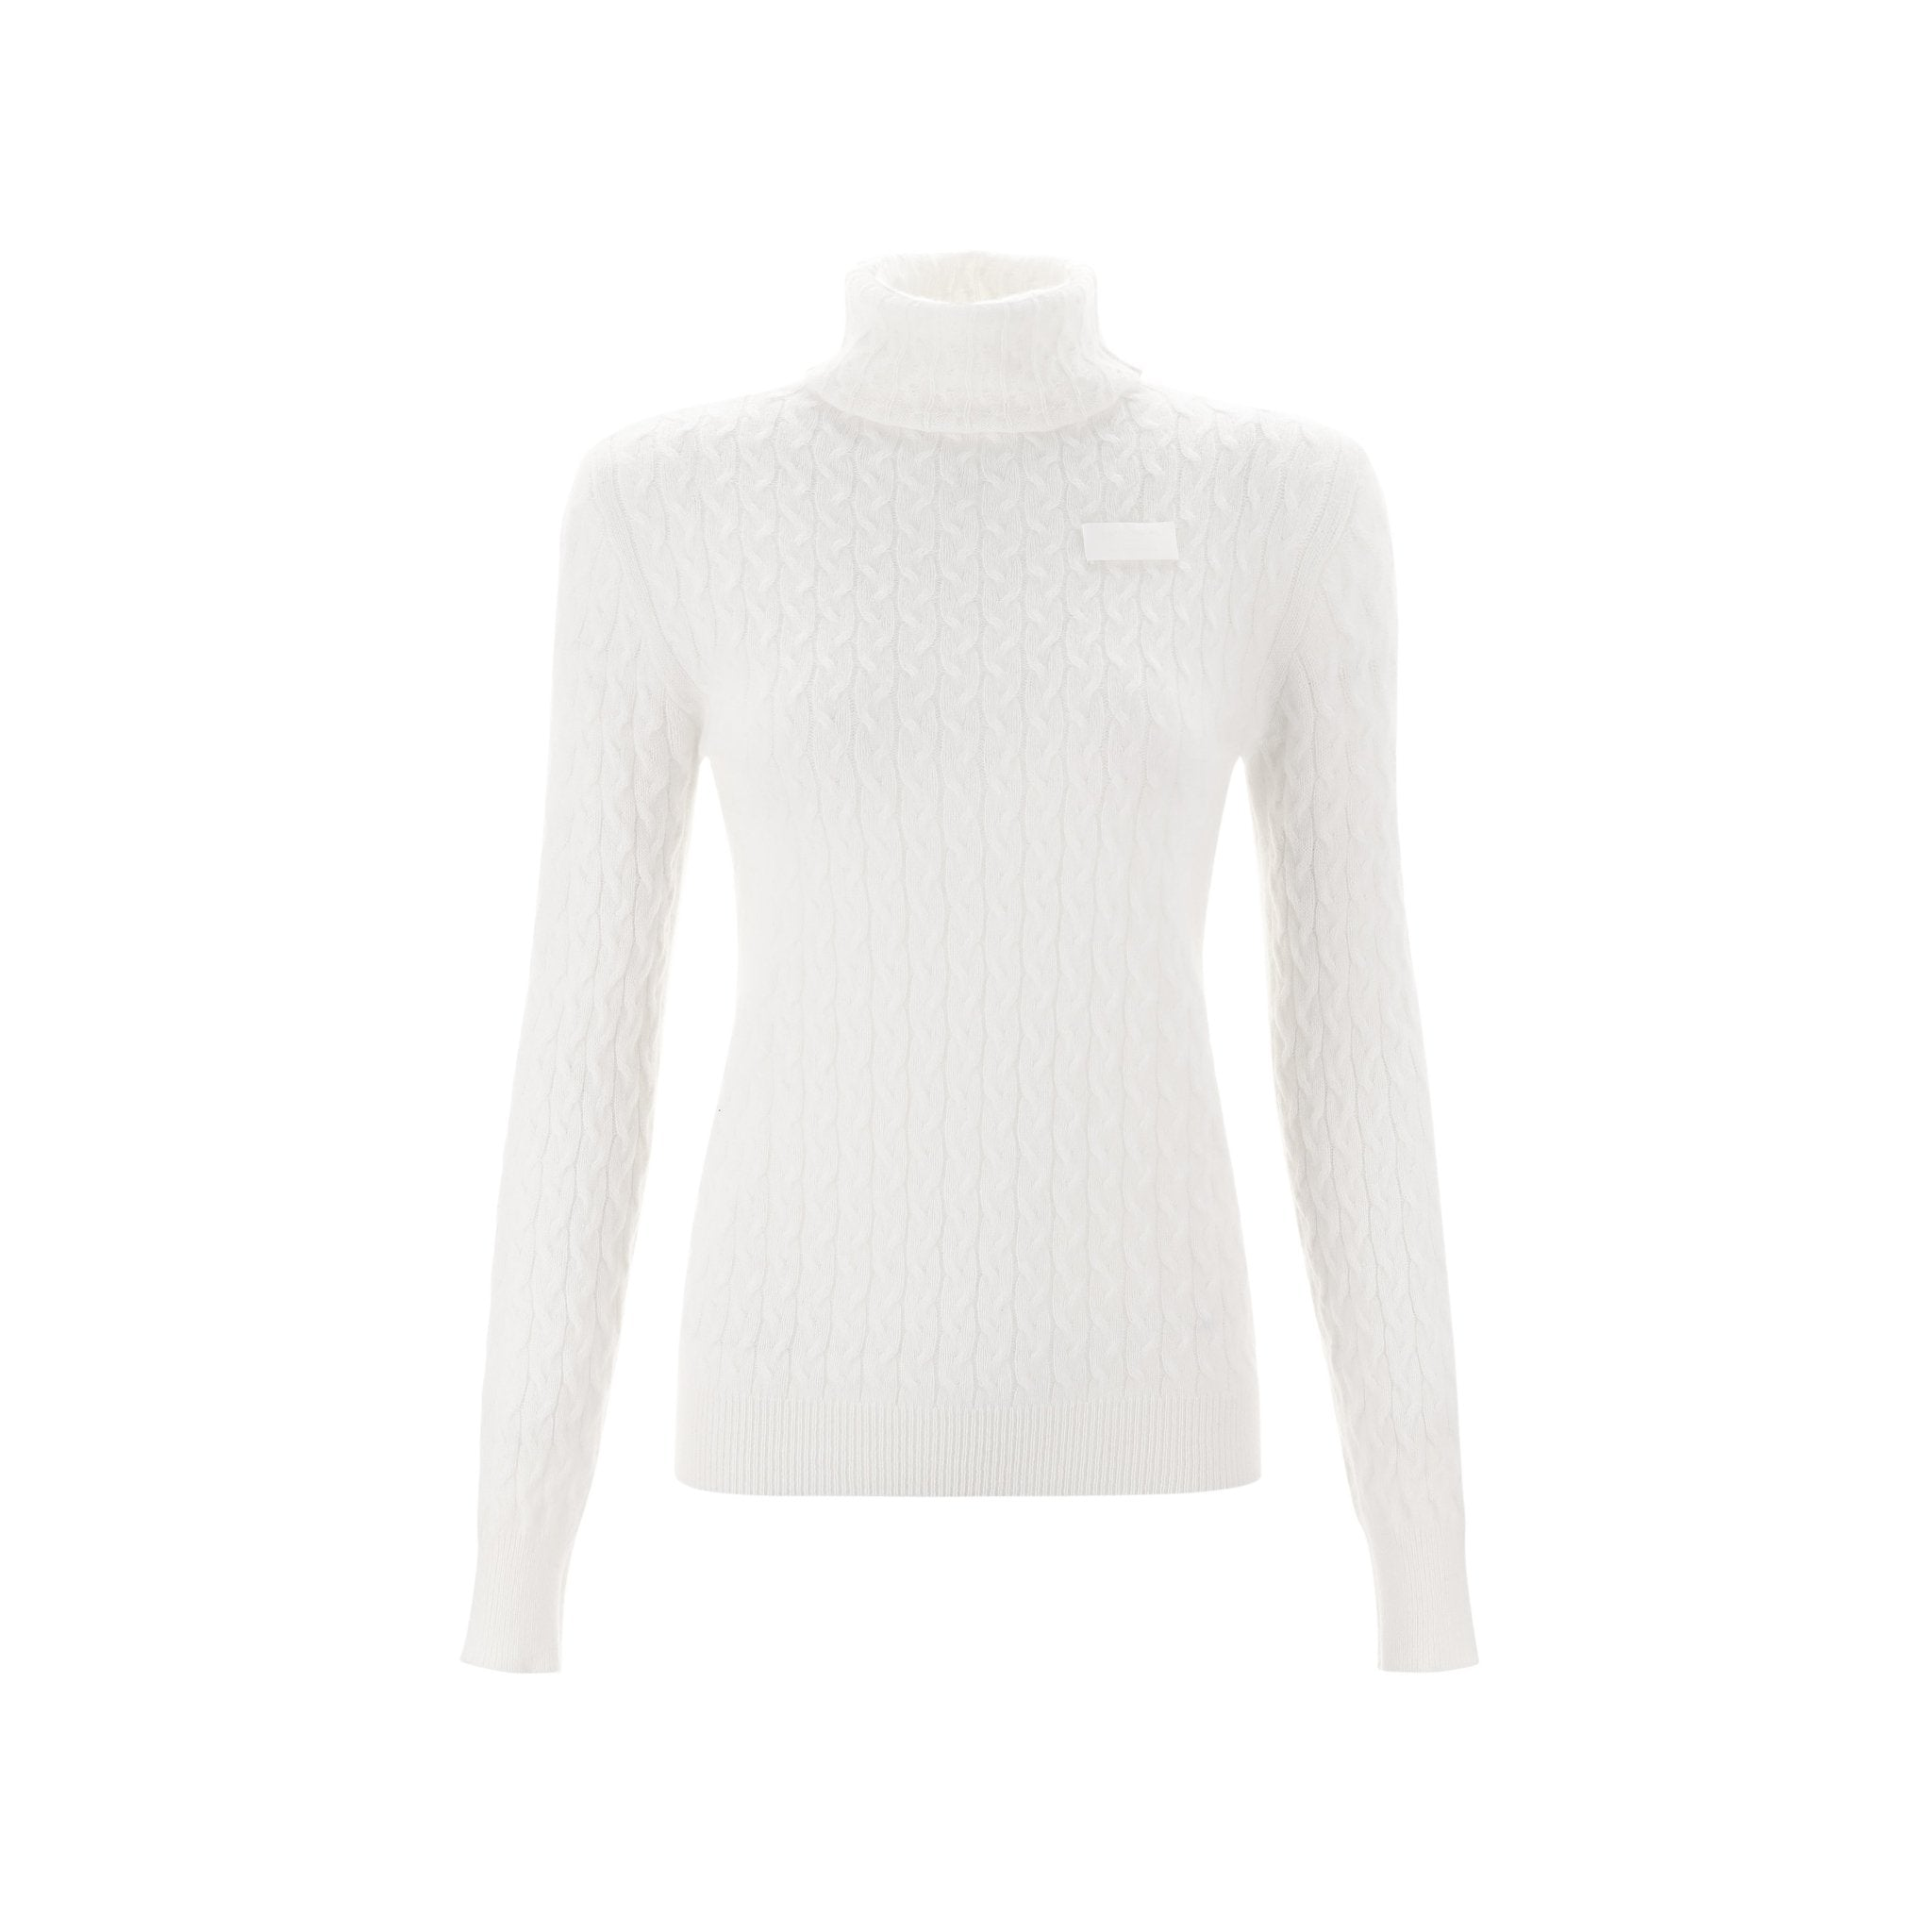 WARM AID White Cashmere Turtleneck Sweater | MADA IN CHINA